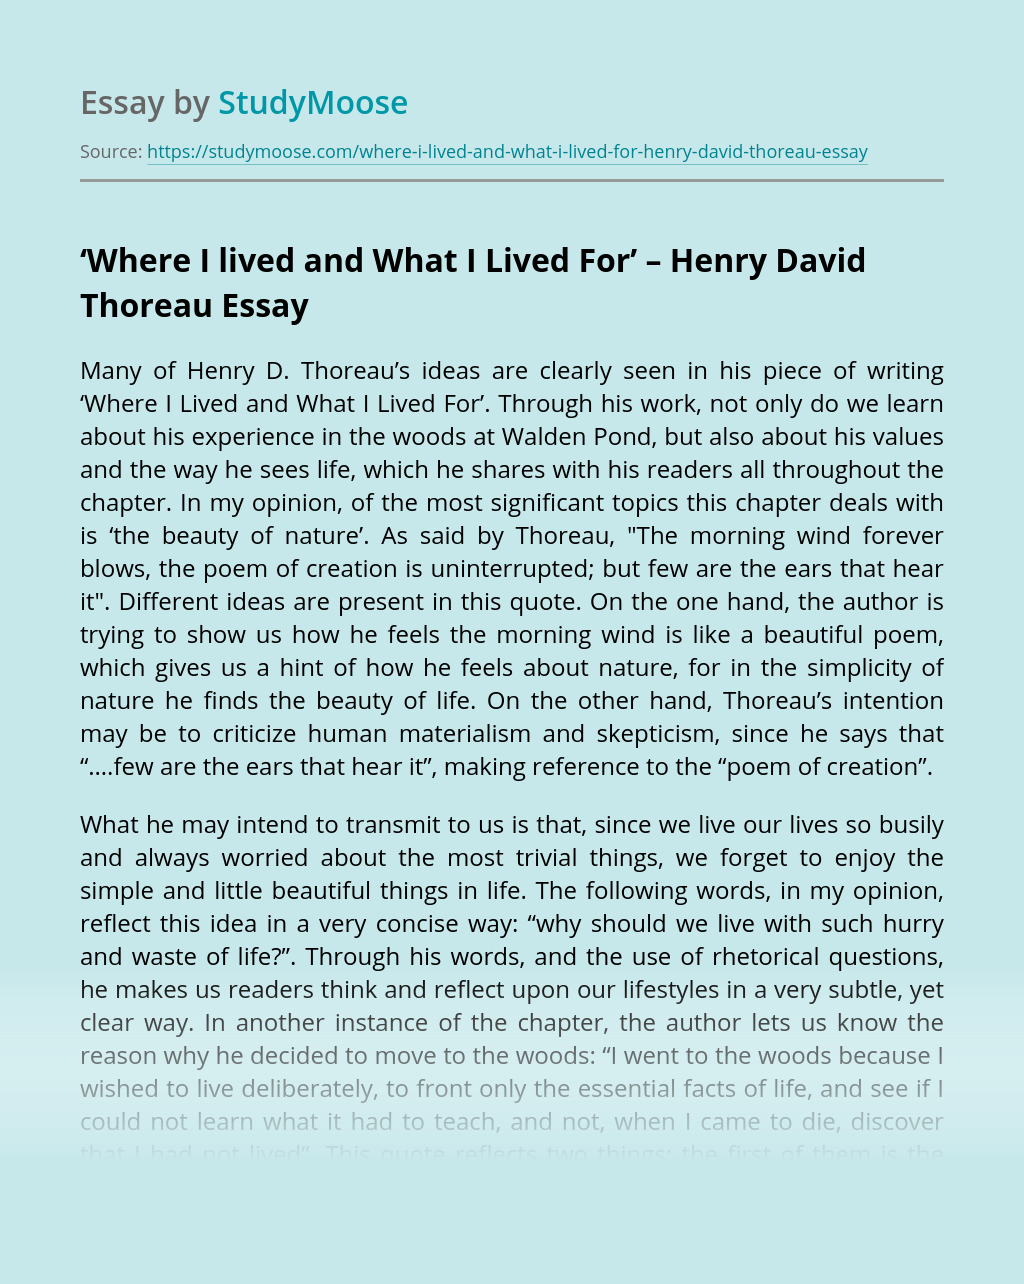 'Where I lived and What I Lived For' – Henry David Thoreau